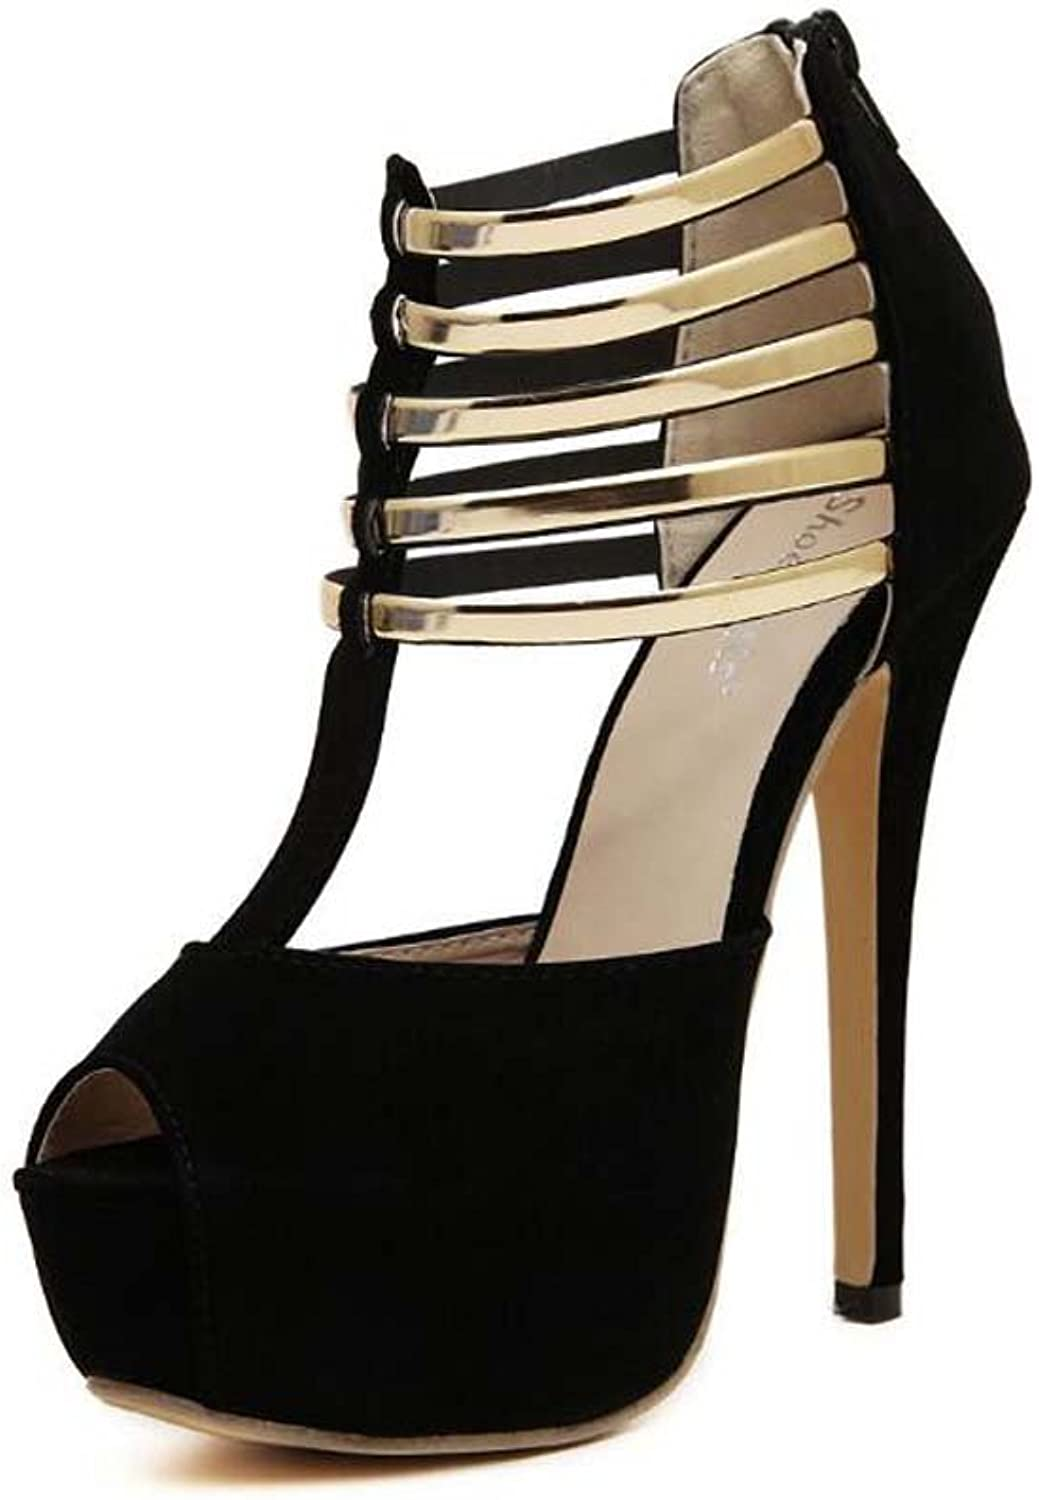 Large Size Women Pump shoes 14cm Stiletto T-Strap Sandals Dress shoes Peep Toe D'Orsay Metal Strap Zipper OL Court shoes Roma shoes Night Club shoes EU Size 34-43